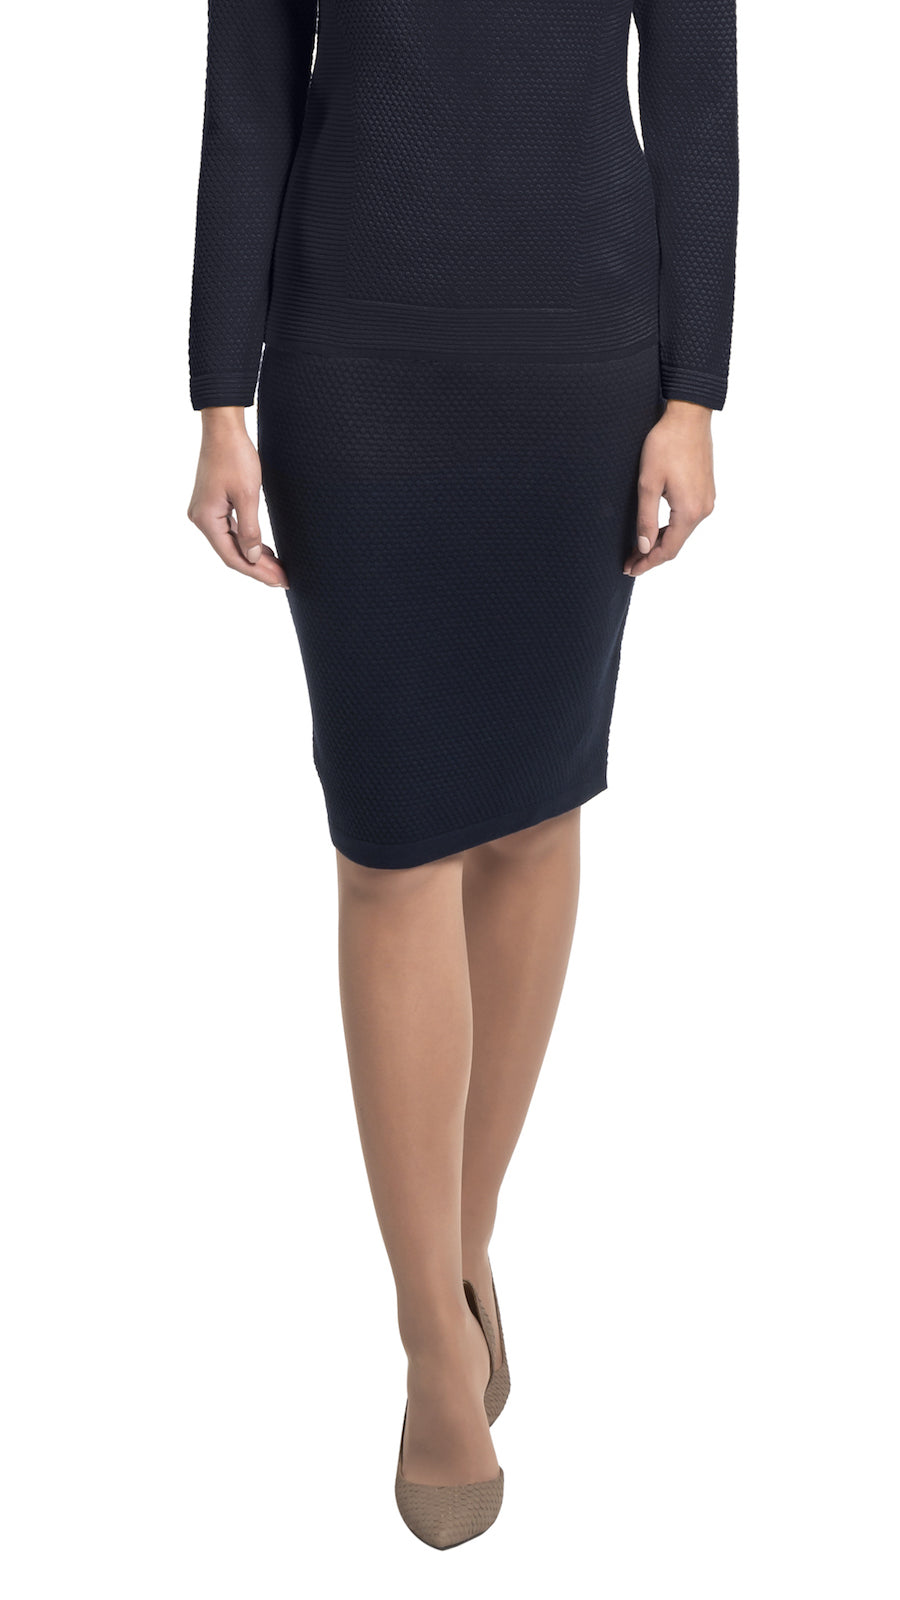 CONTEMPO Jilliane knitted skirt, Navy